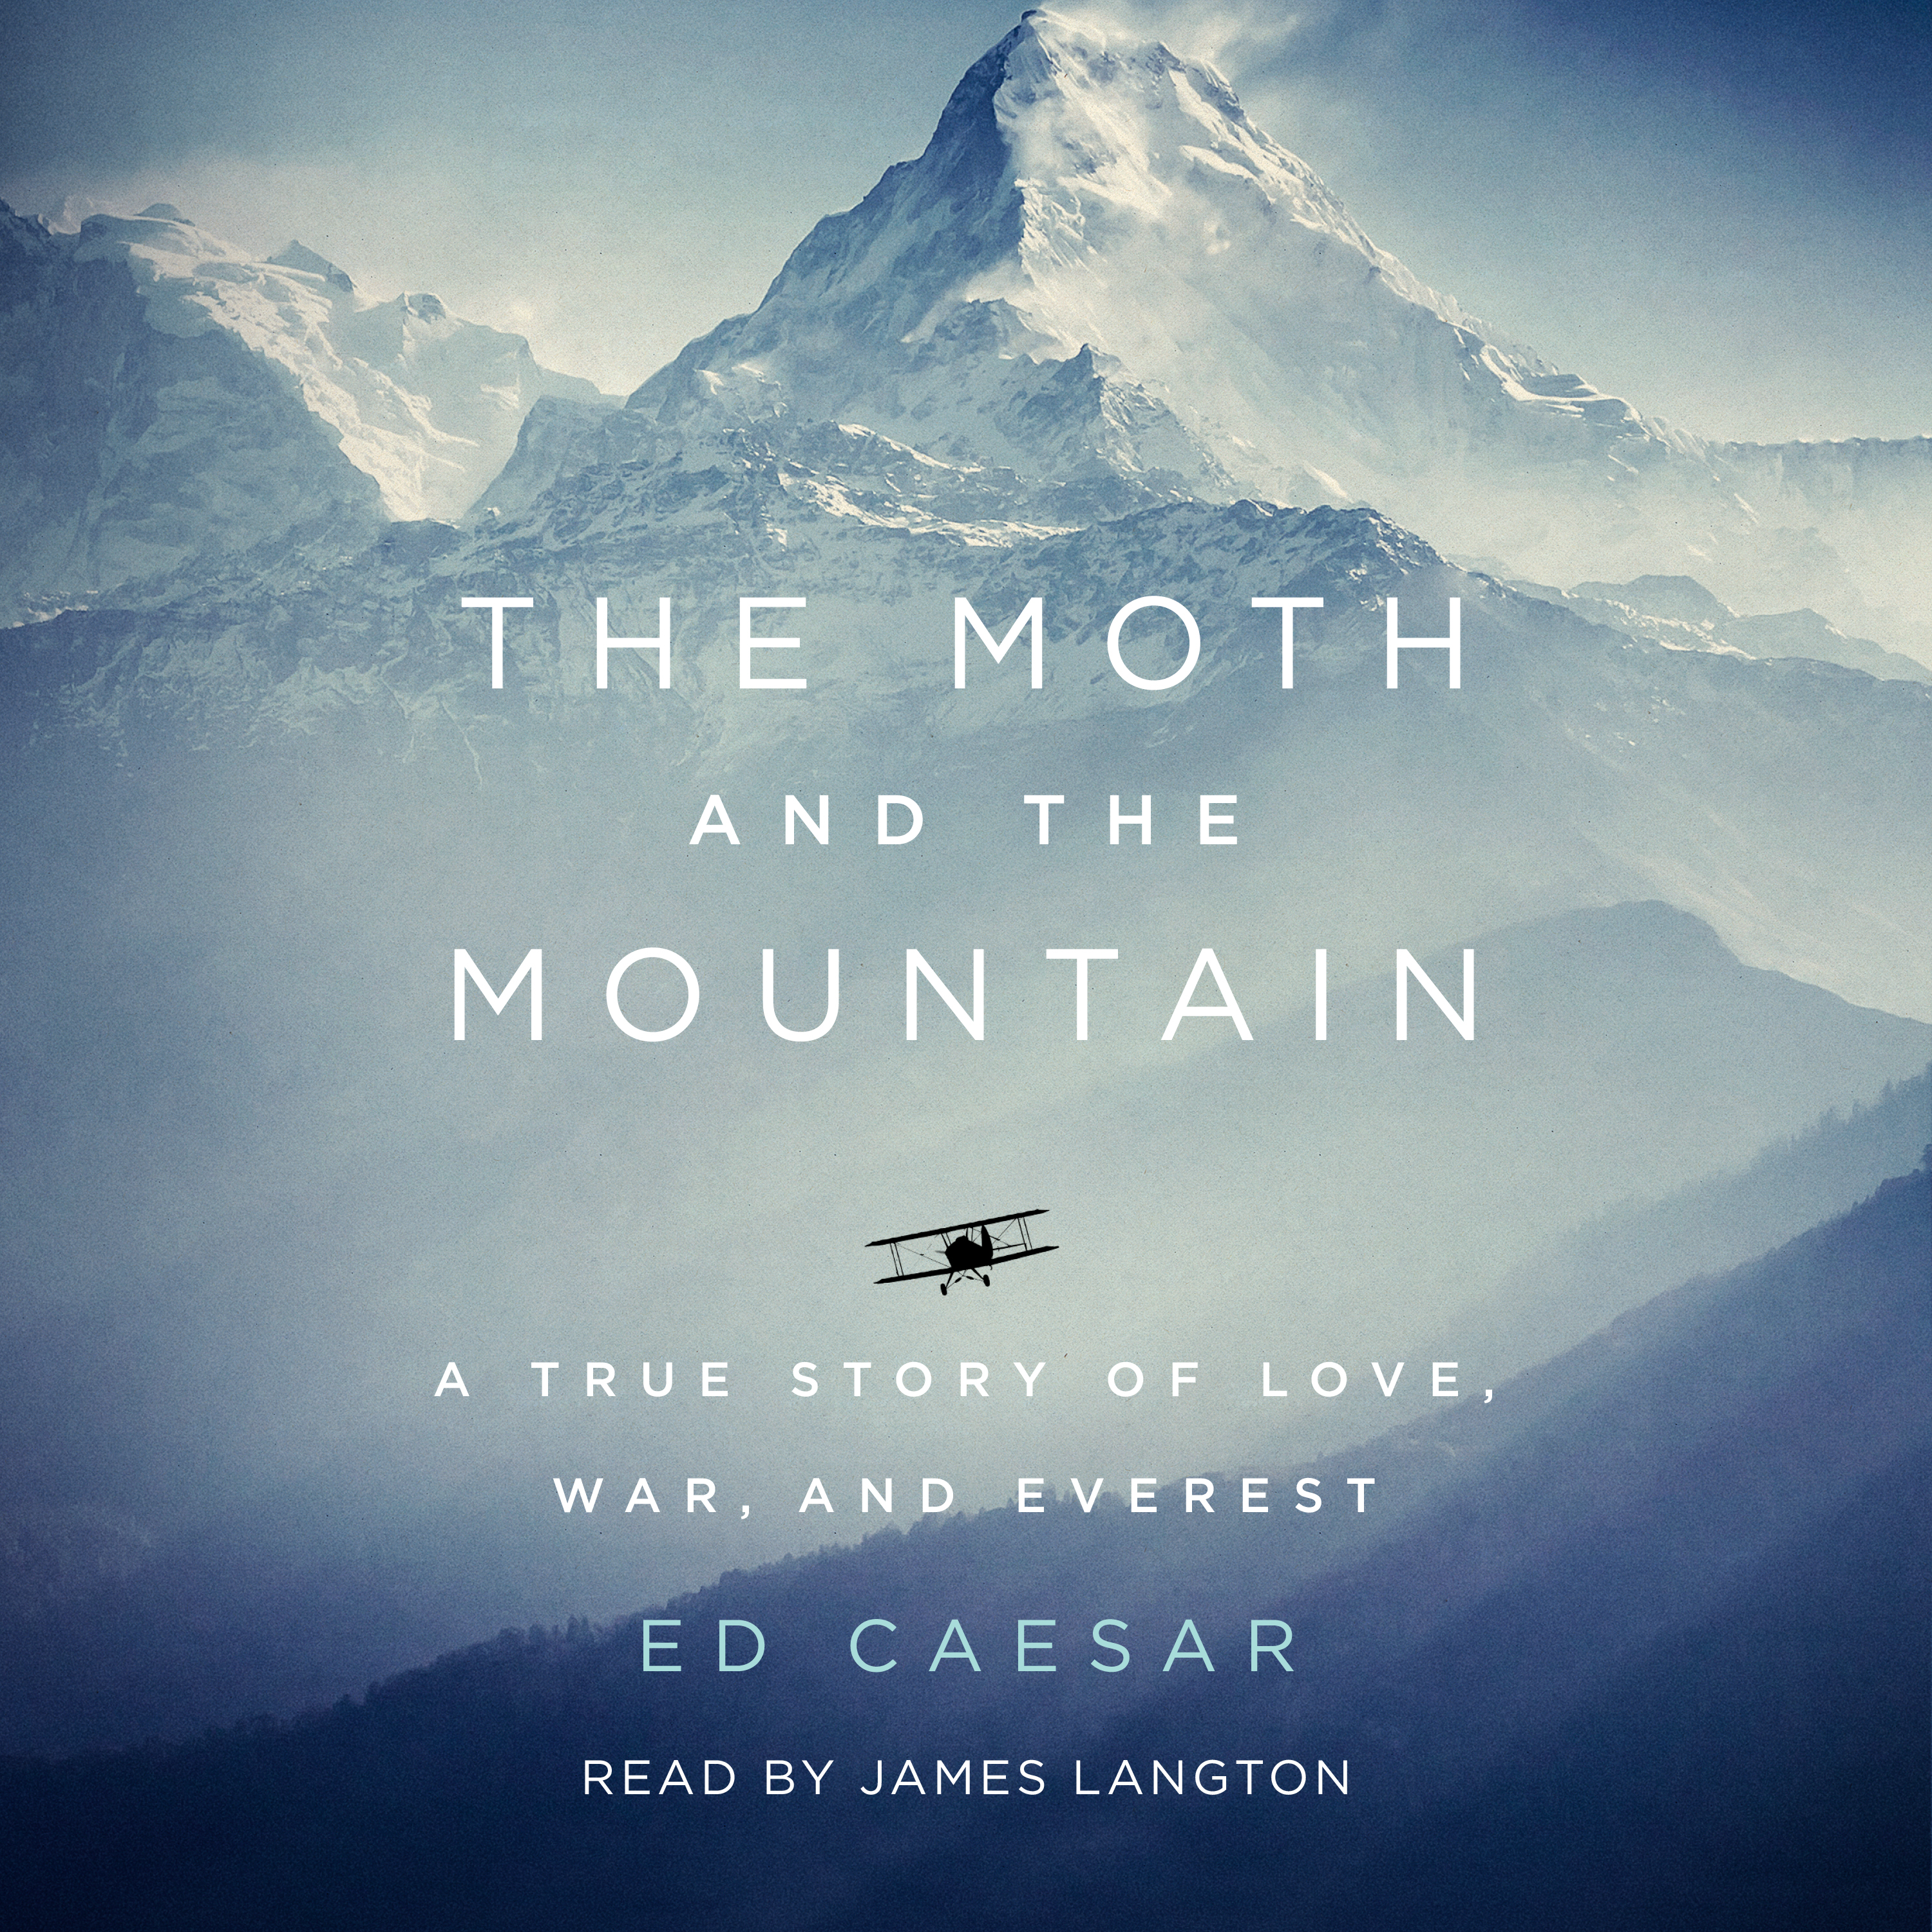 The Moth and the Mountain